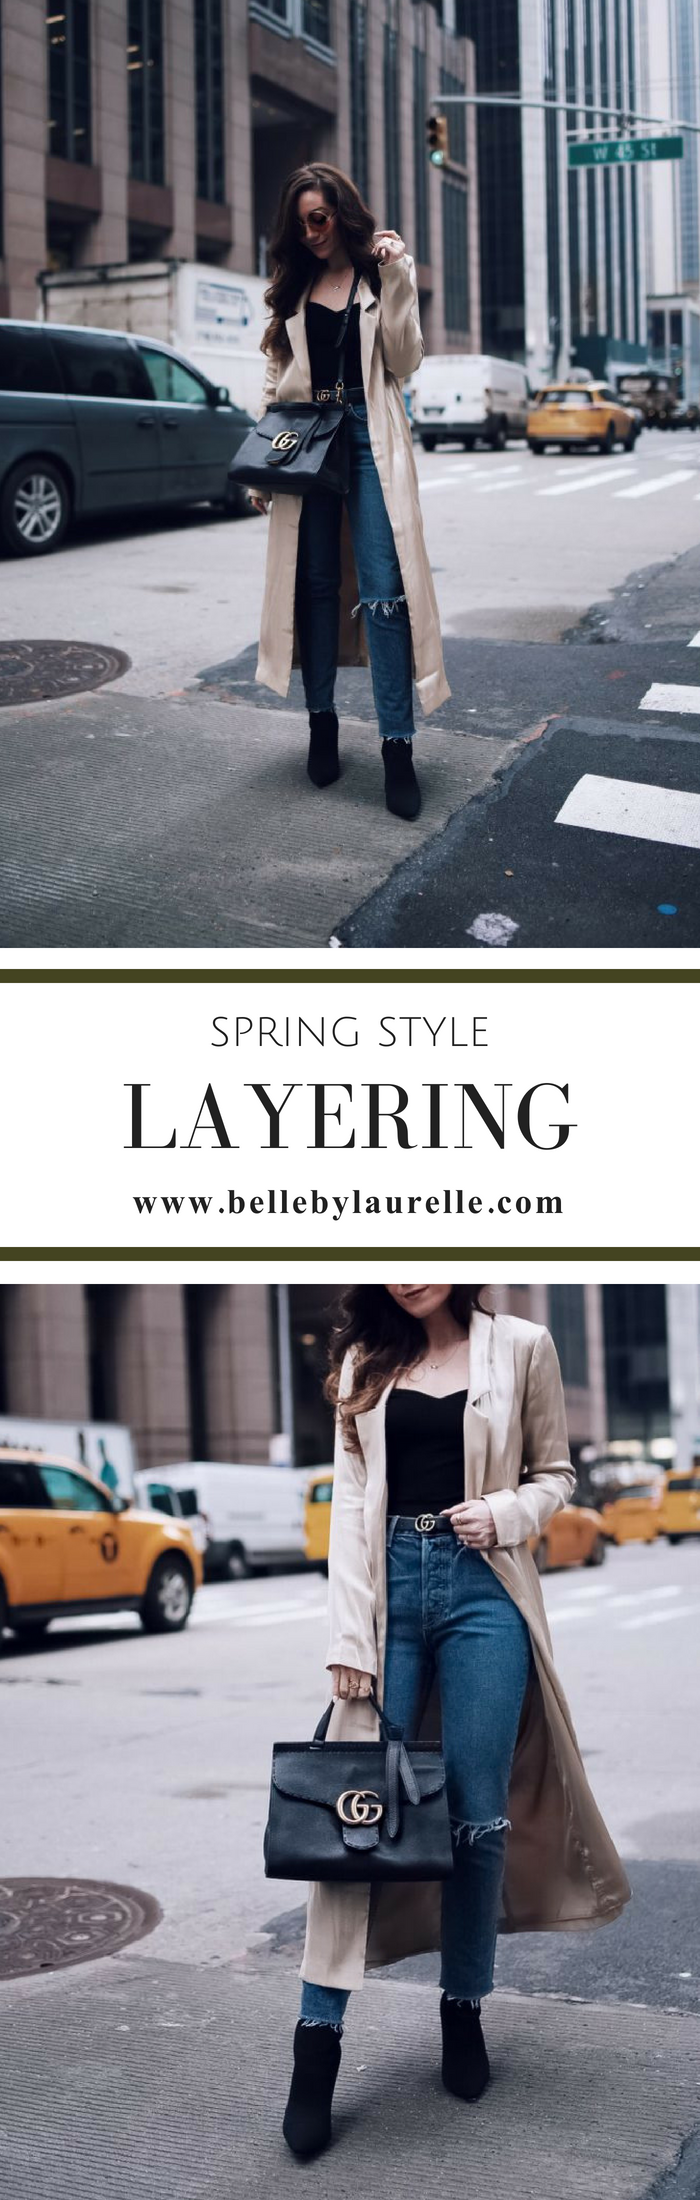 HOW TO LAYER FOR SPRING STYLE Belle by Laurelle